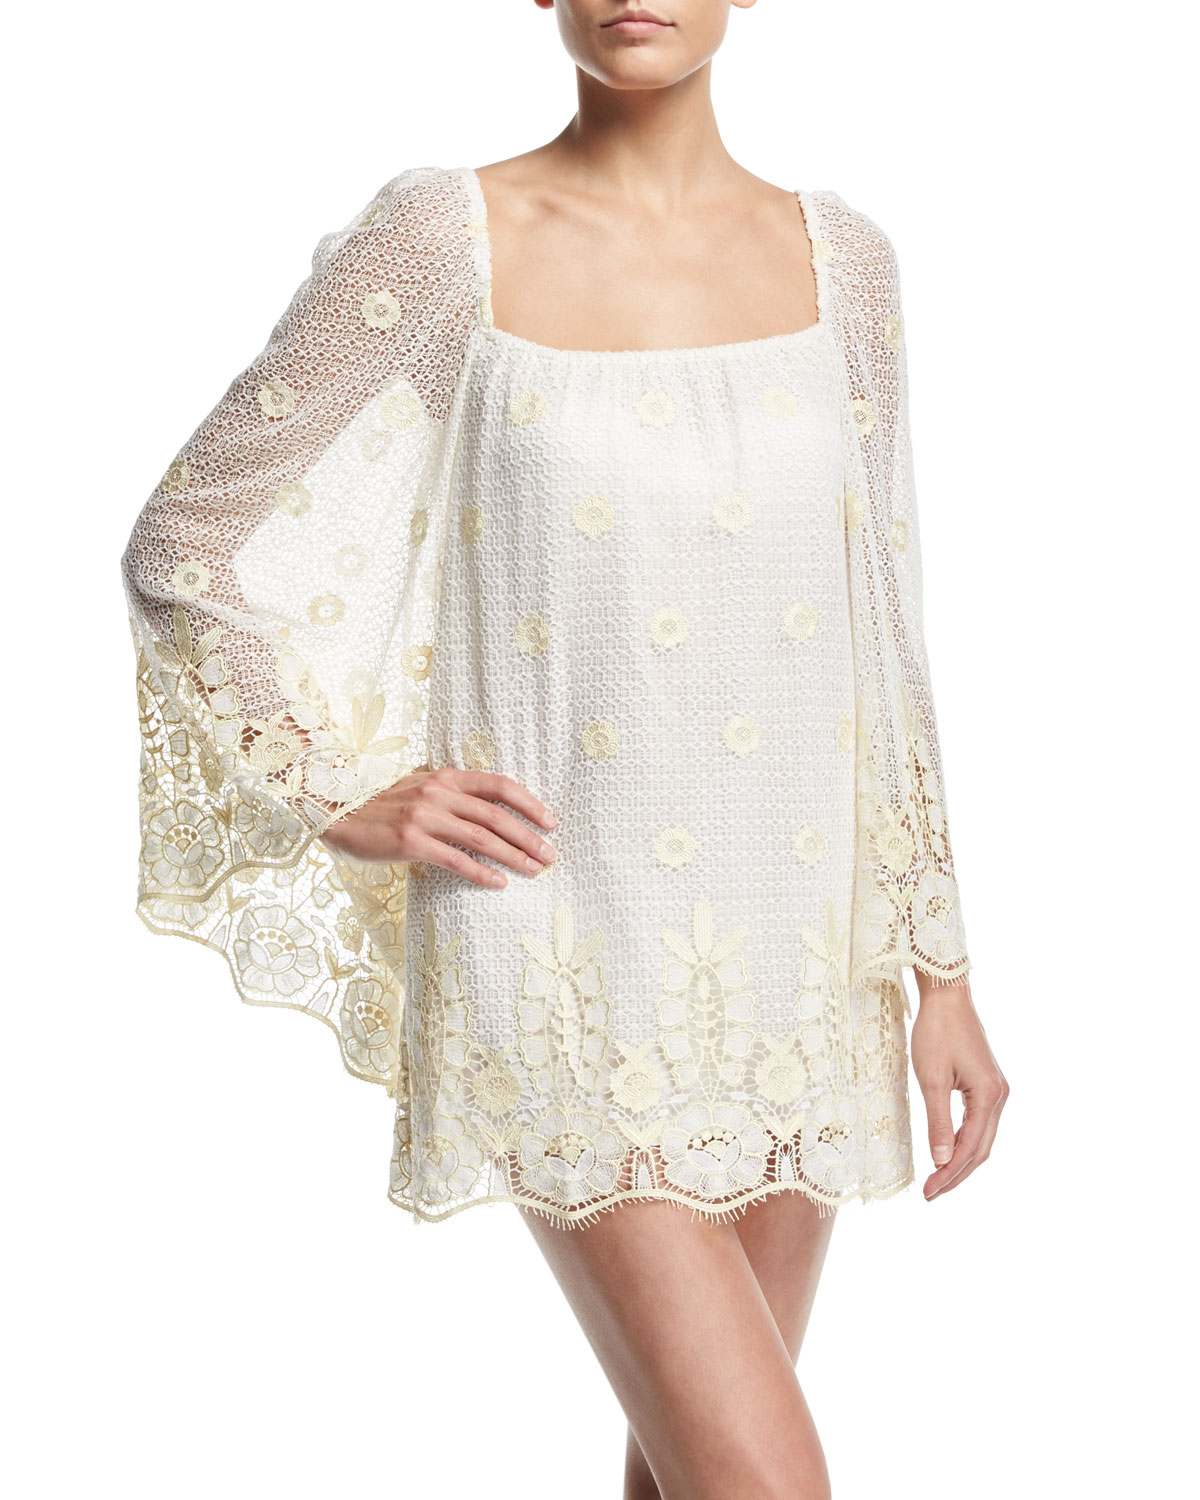 Miguelina Dresses NICOLETTE SHEER LACE COVERUP DRESS